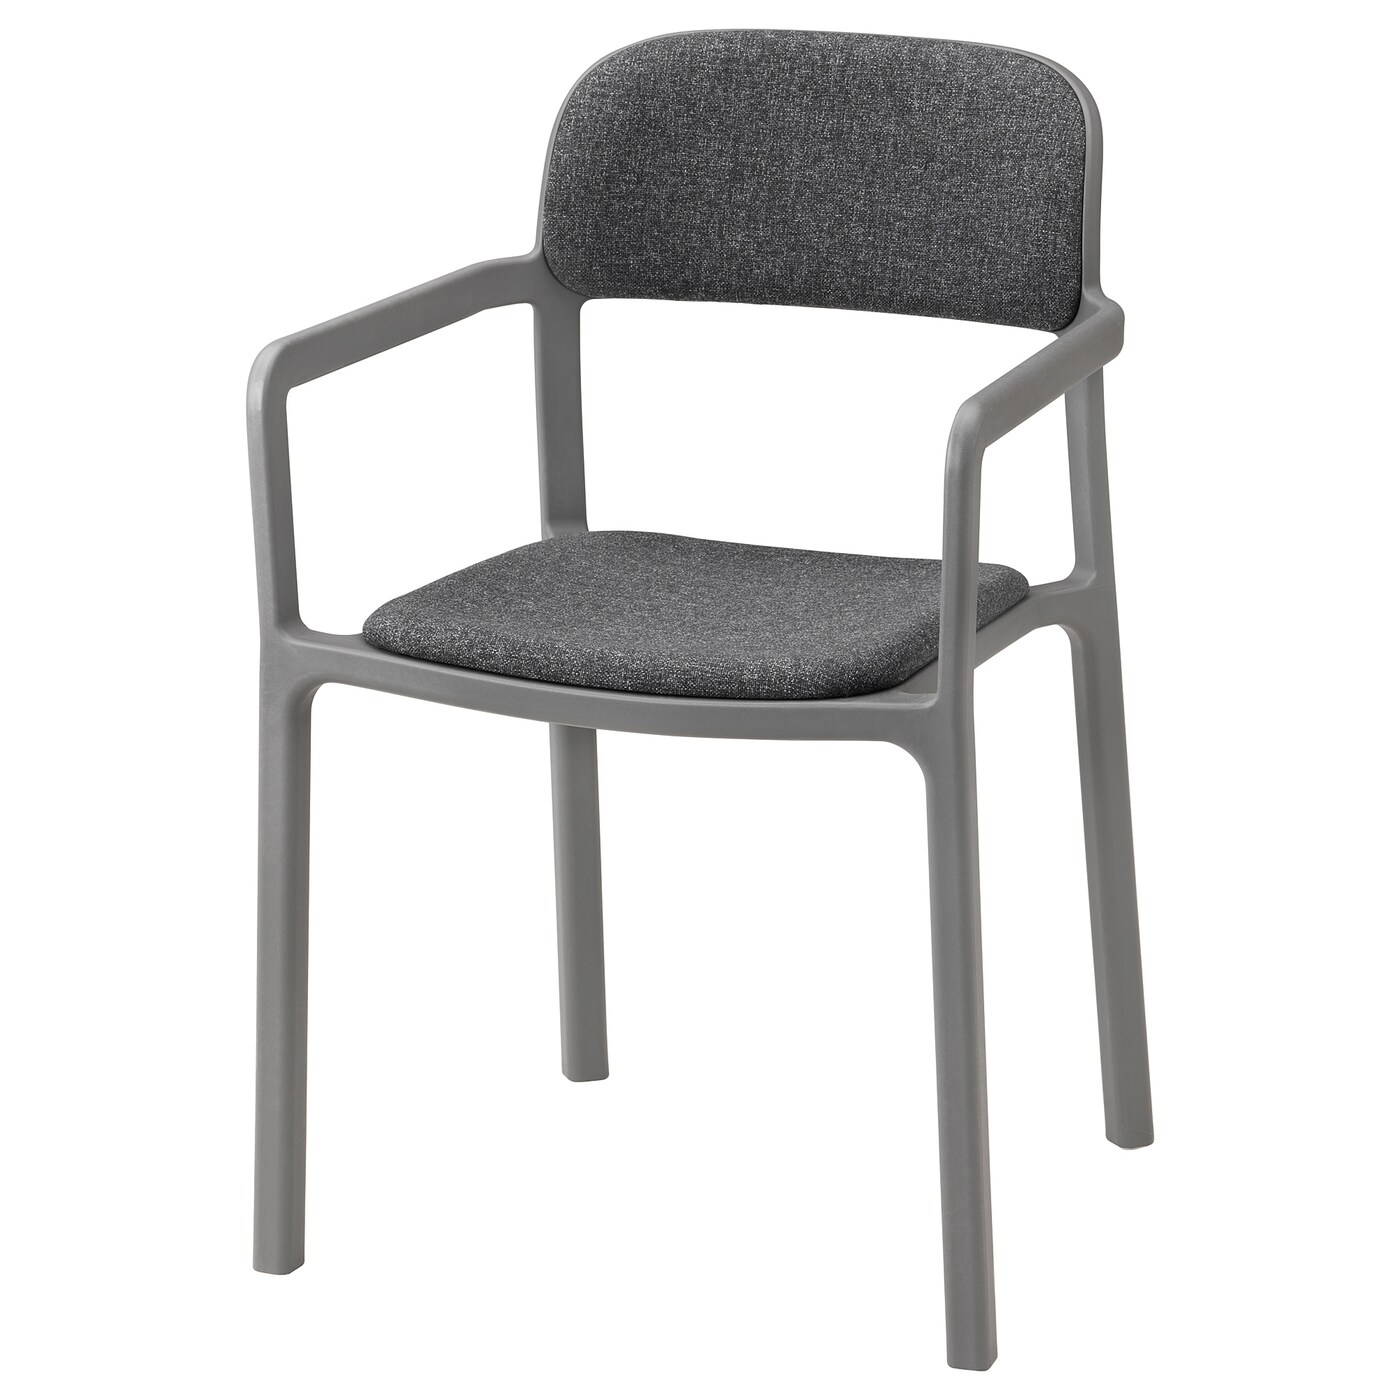 IKEA YPPERLIG chair with armrests Lightweight, easy to lift and move. Easy to clean